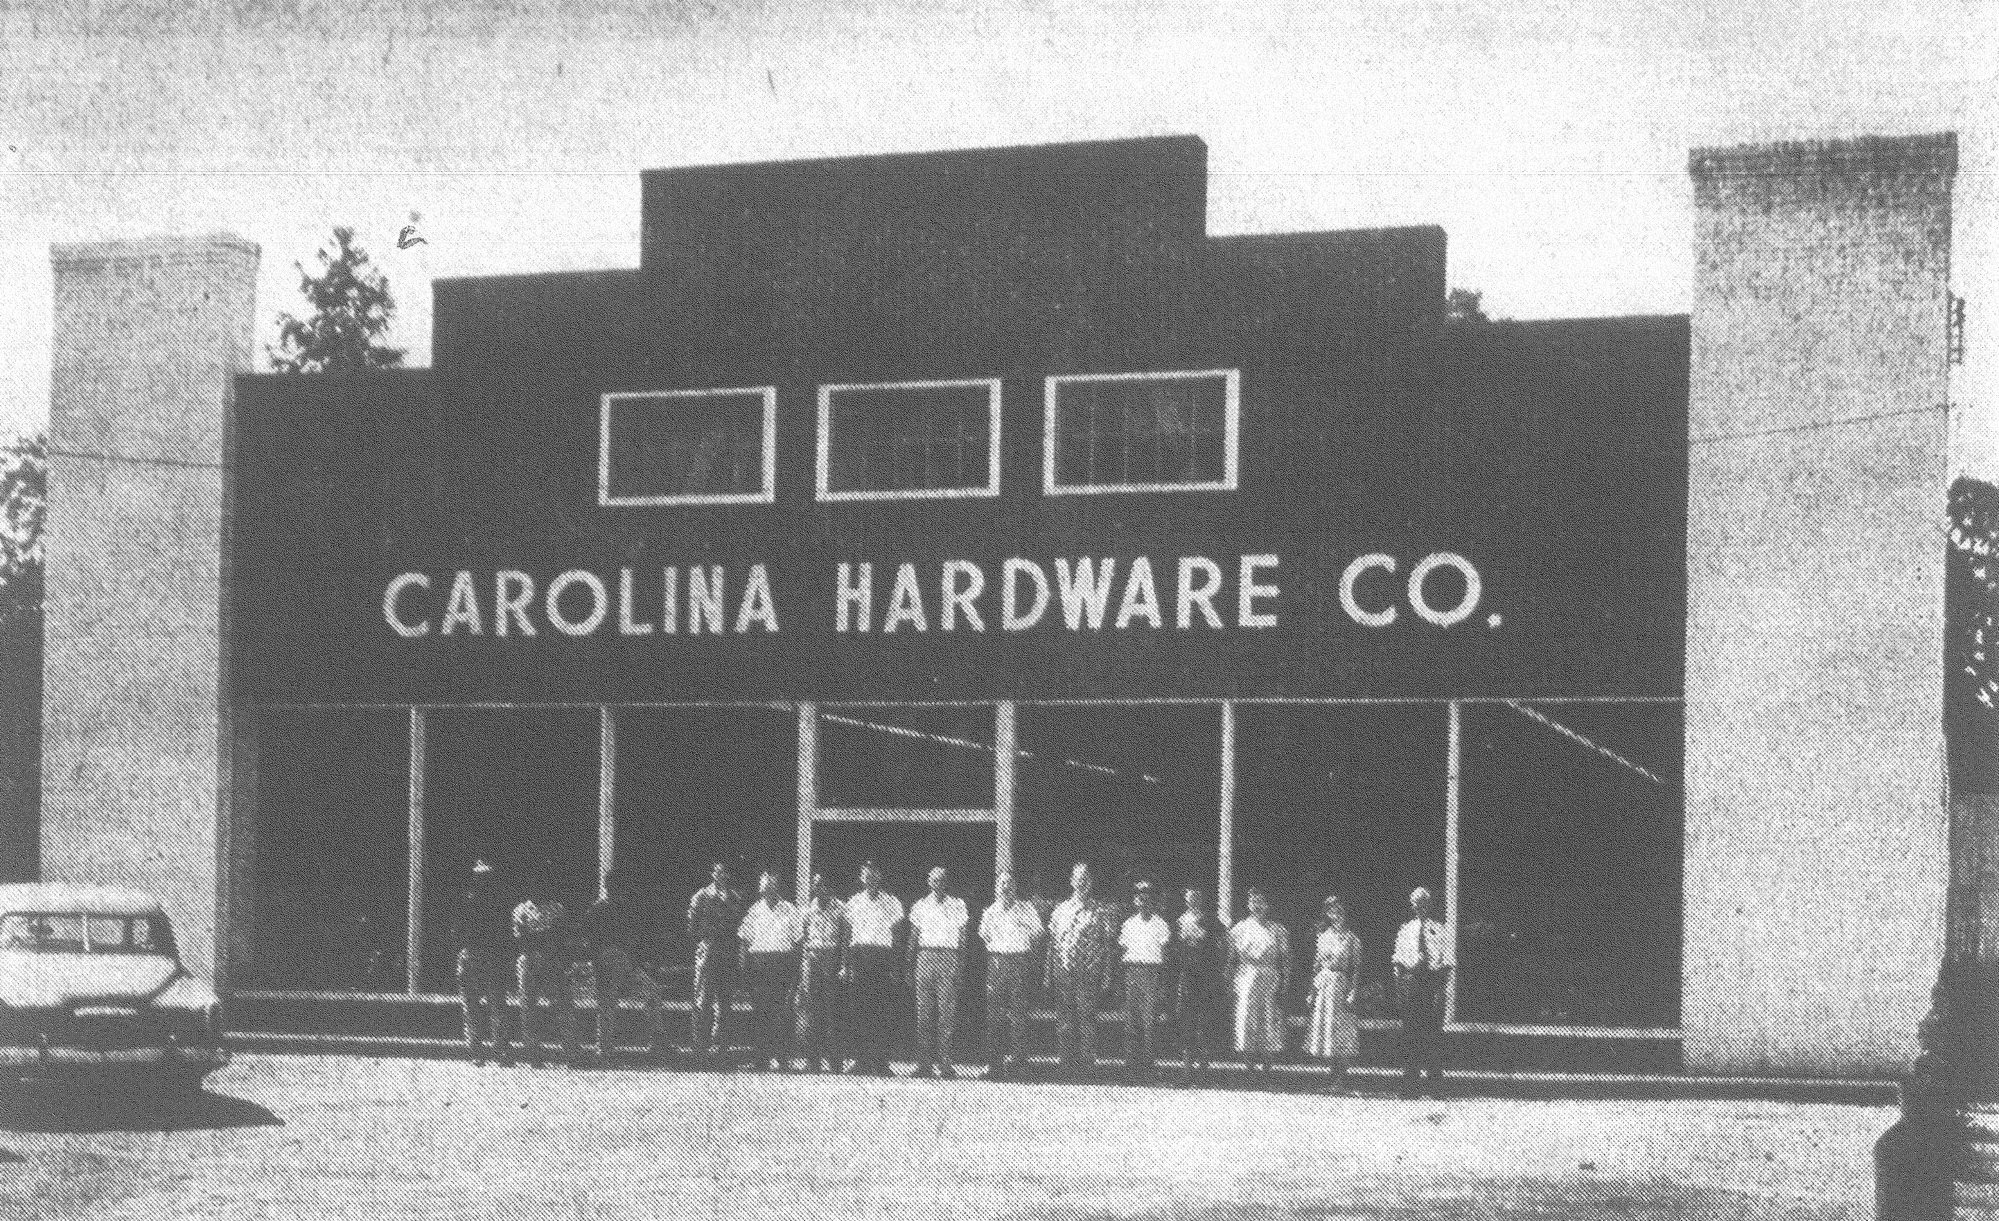 MIDDLE: The Carolina Hardware Co. employees stand outside the building in July 1954.